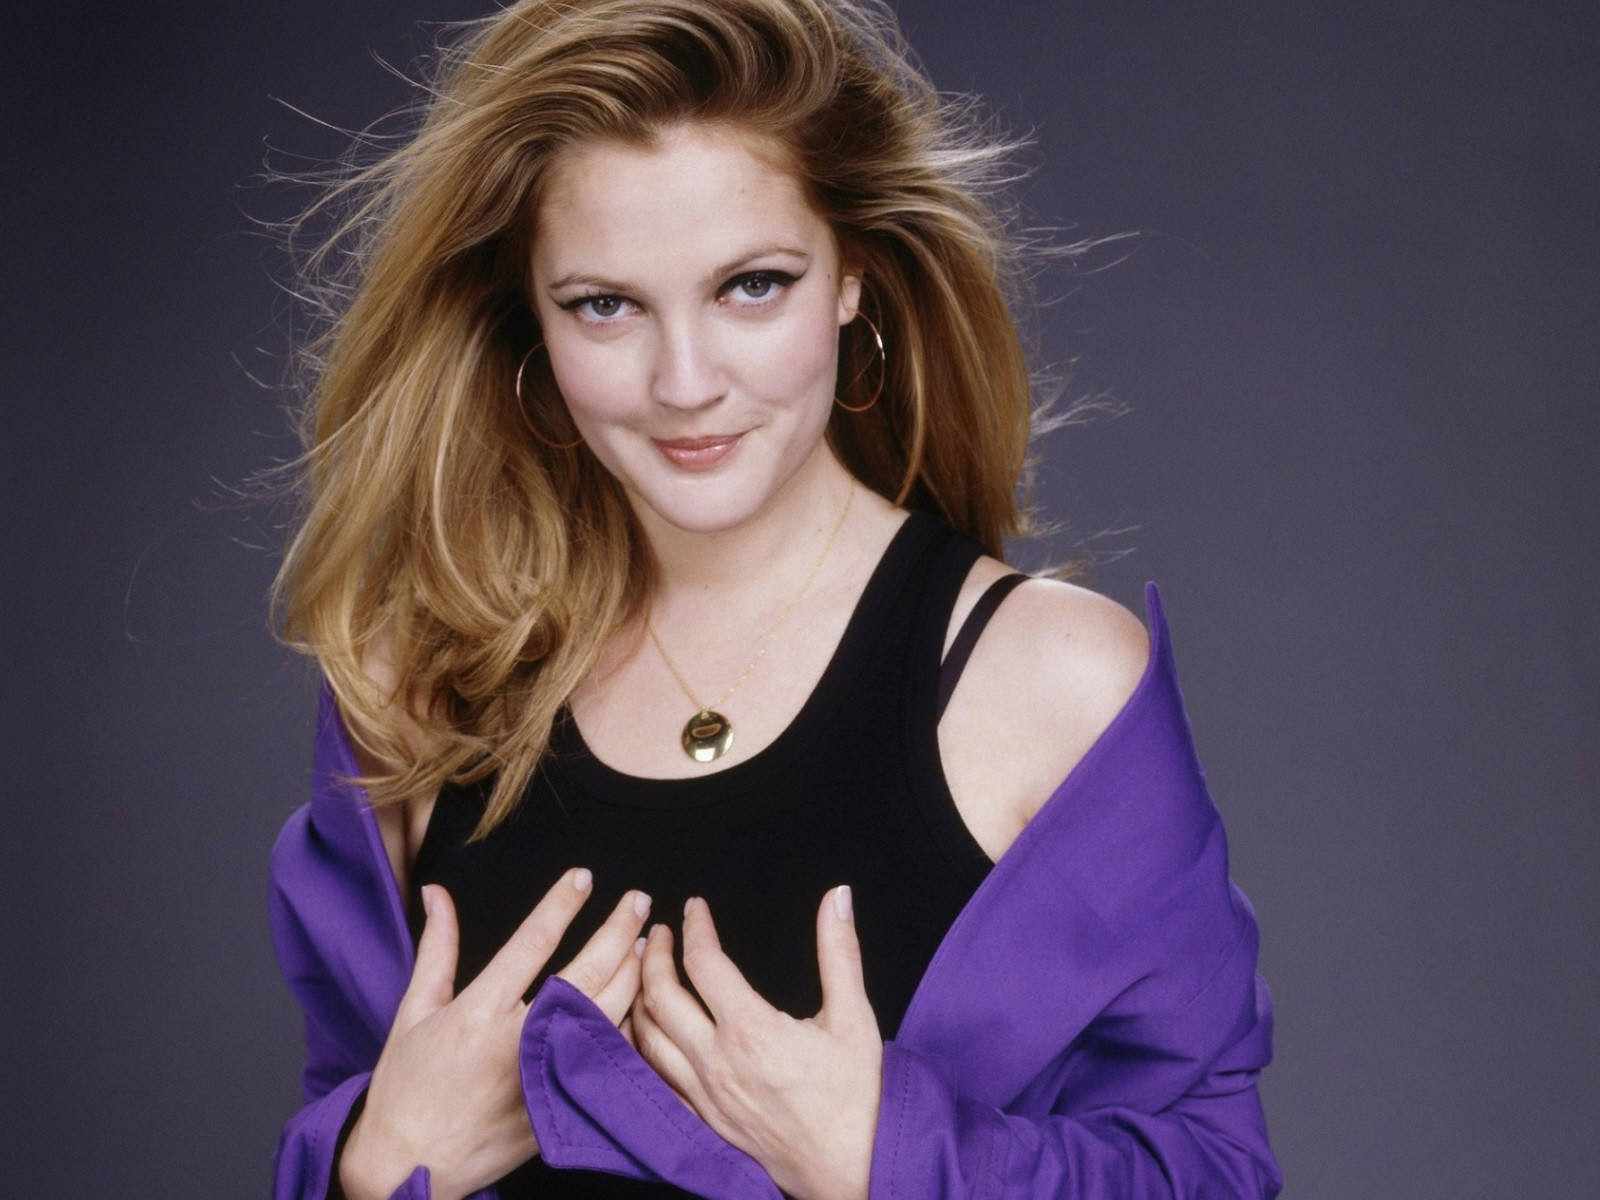 http://4.bp.blogspot.com/-JQwbuaO9G54/TihEb4PvAbI/AAAAAAAAEZE/YH0idPxXYBw/s1600/Do+you+know+Drew+Barrymore+%25287%2529.jpg